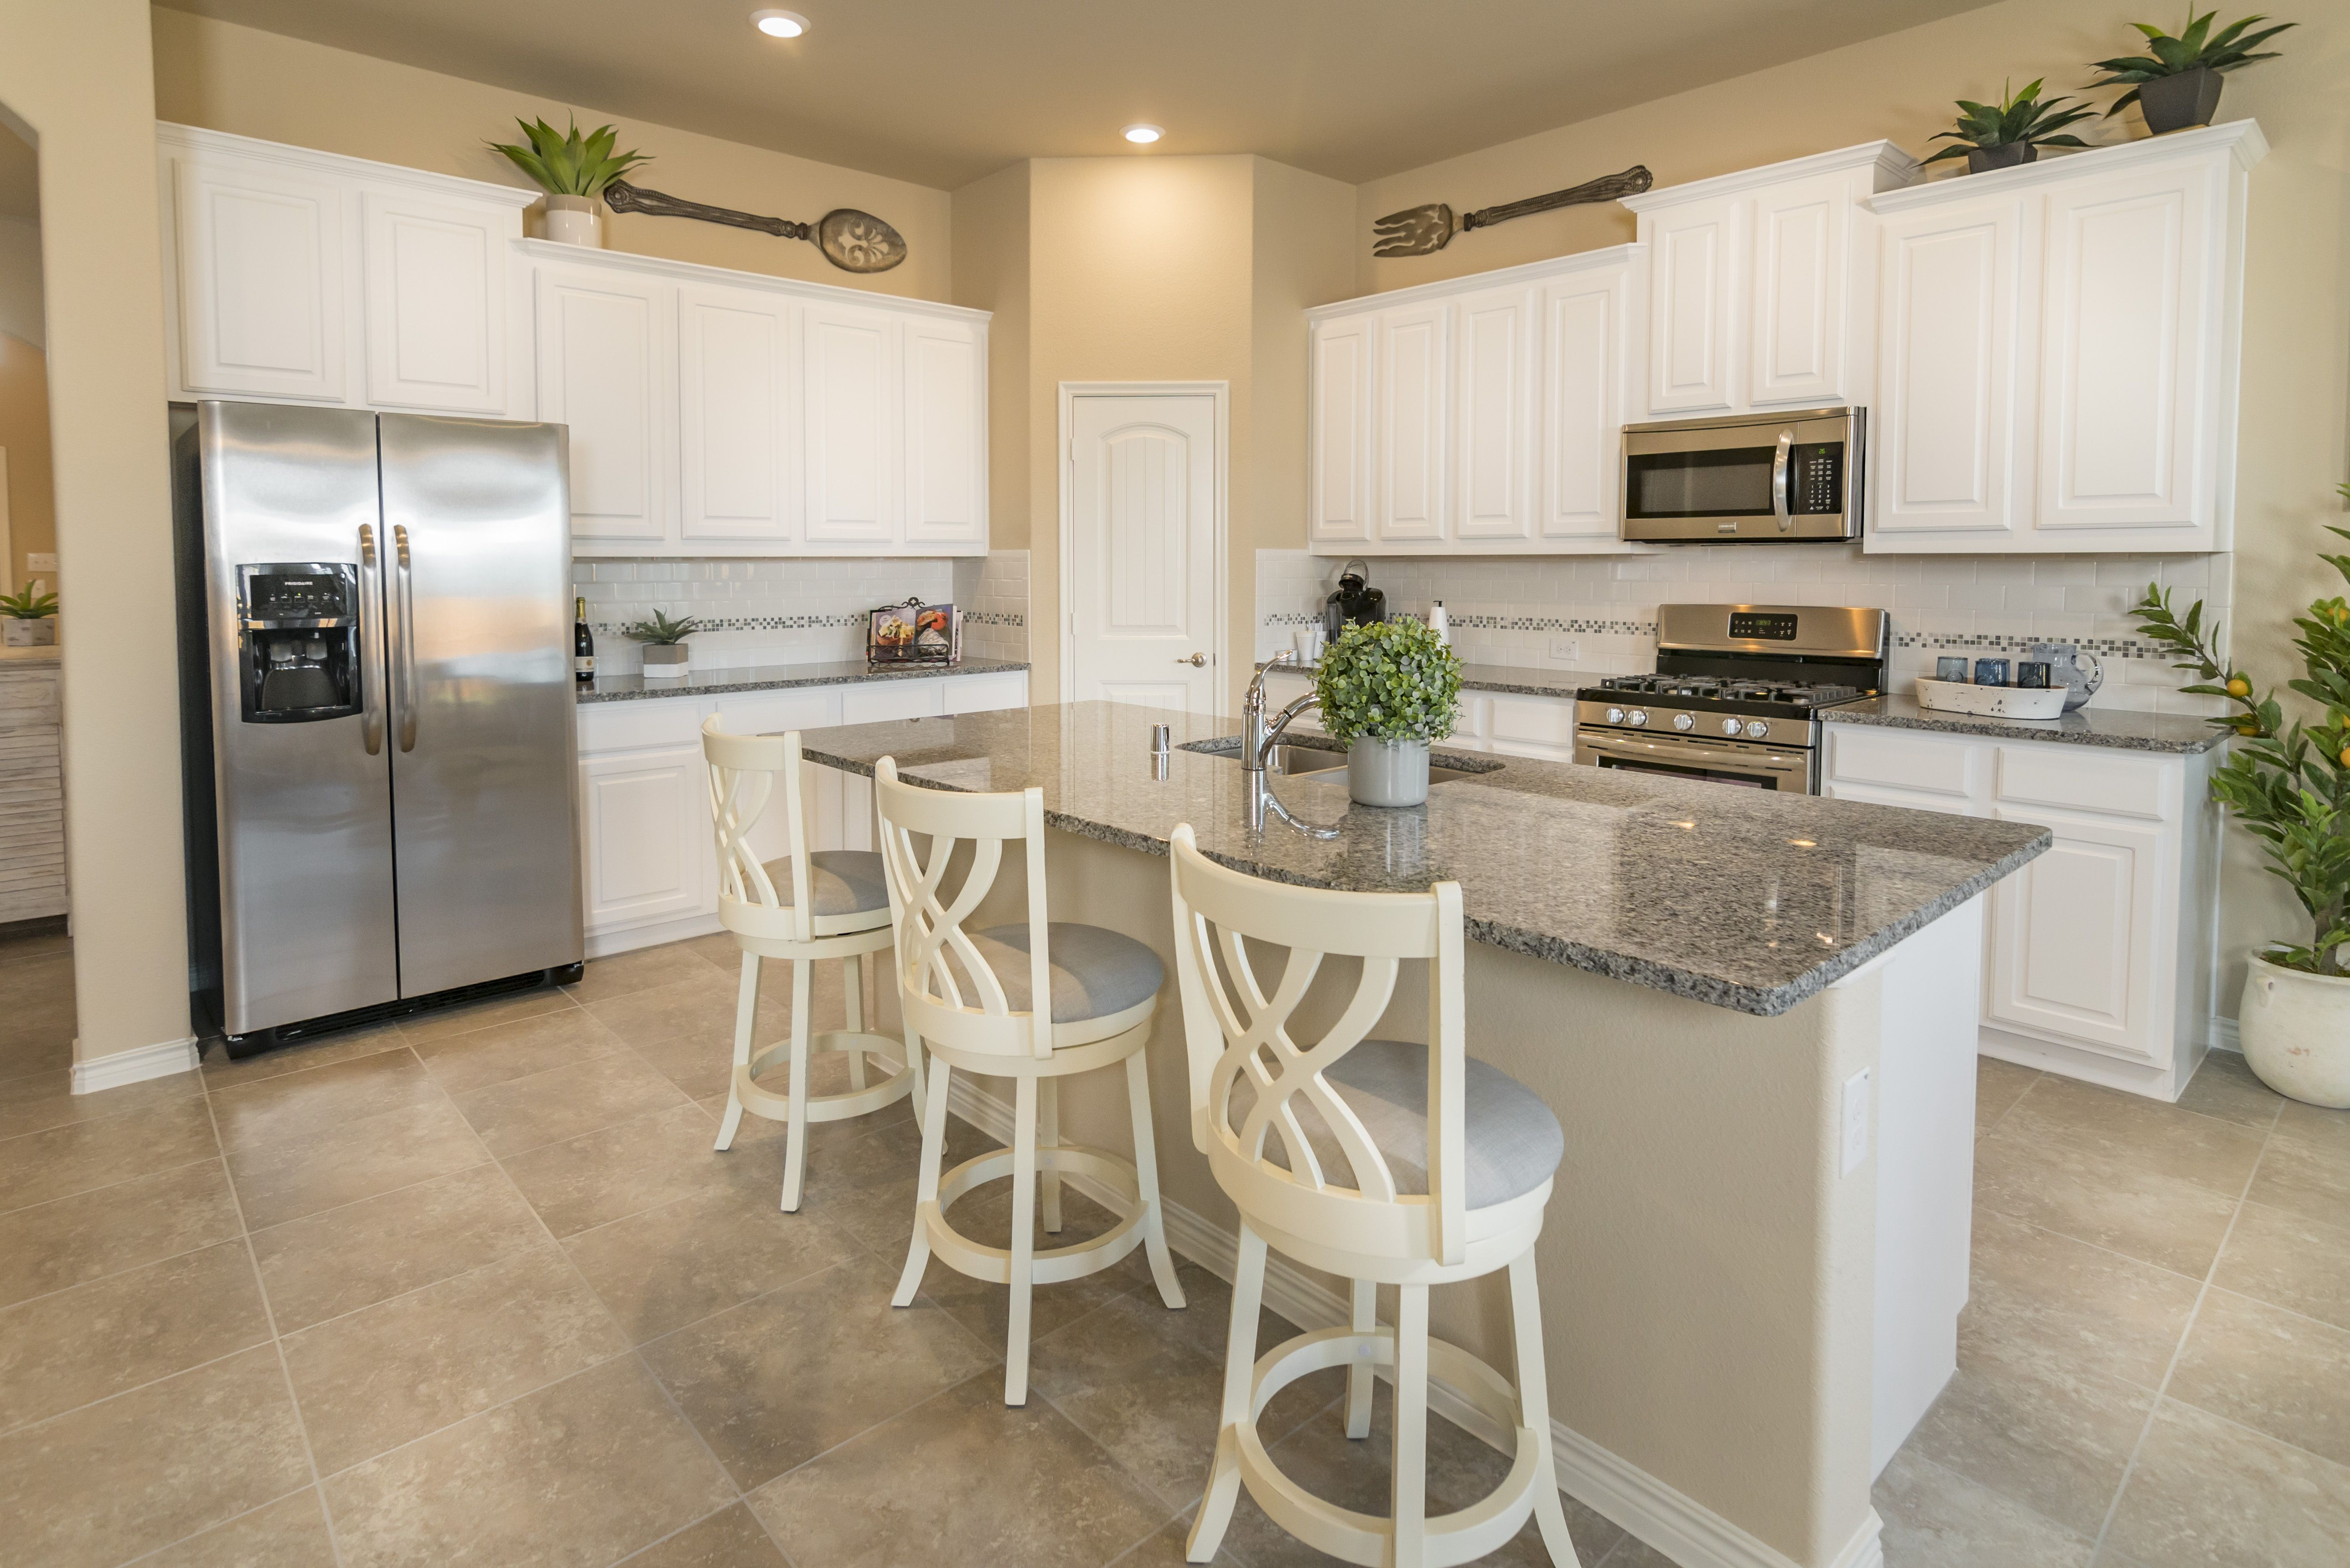 Open Concept Kitchen Dr Horton Model Home In Clements Ranch In Forney Tx Horton Homes Dr Horton Homes Home Kitchens